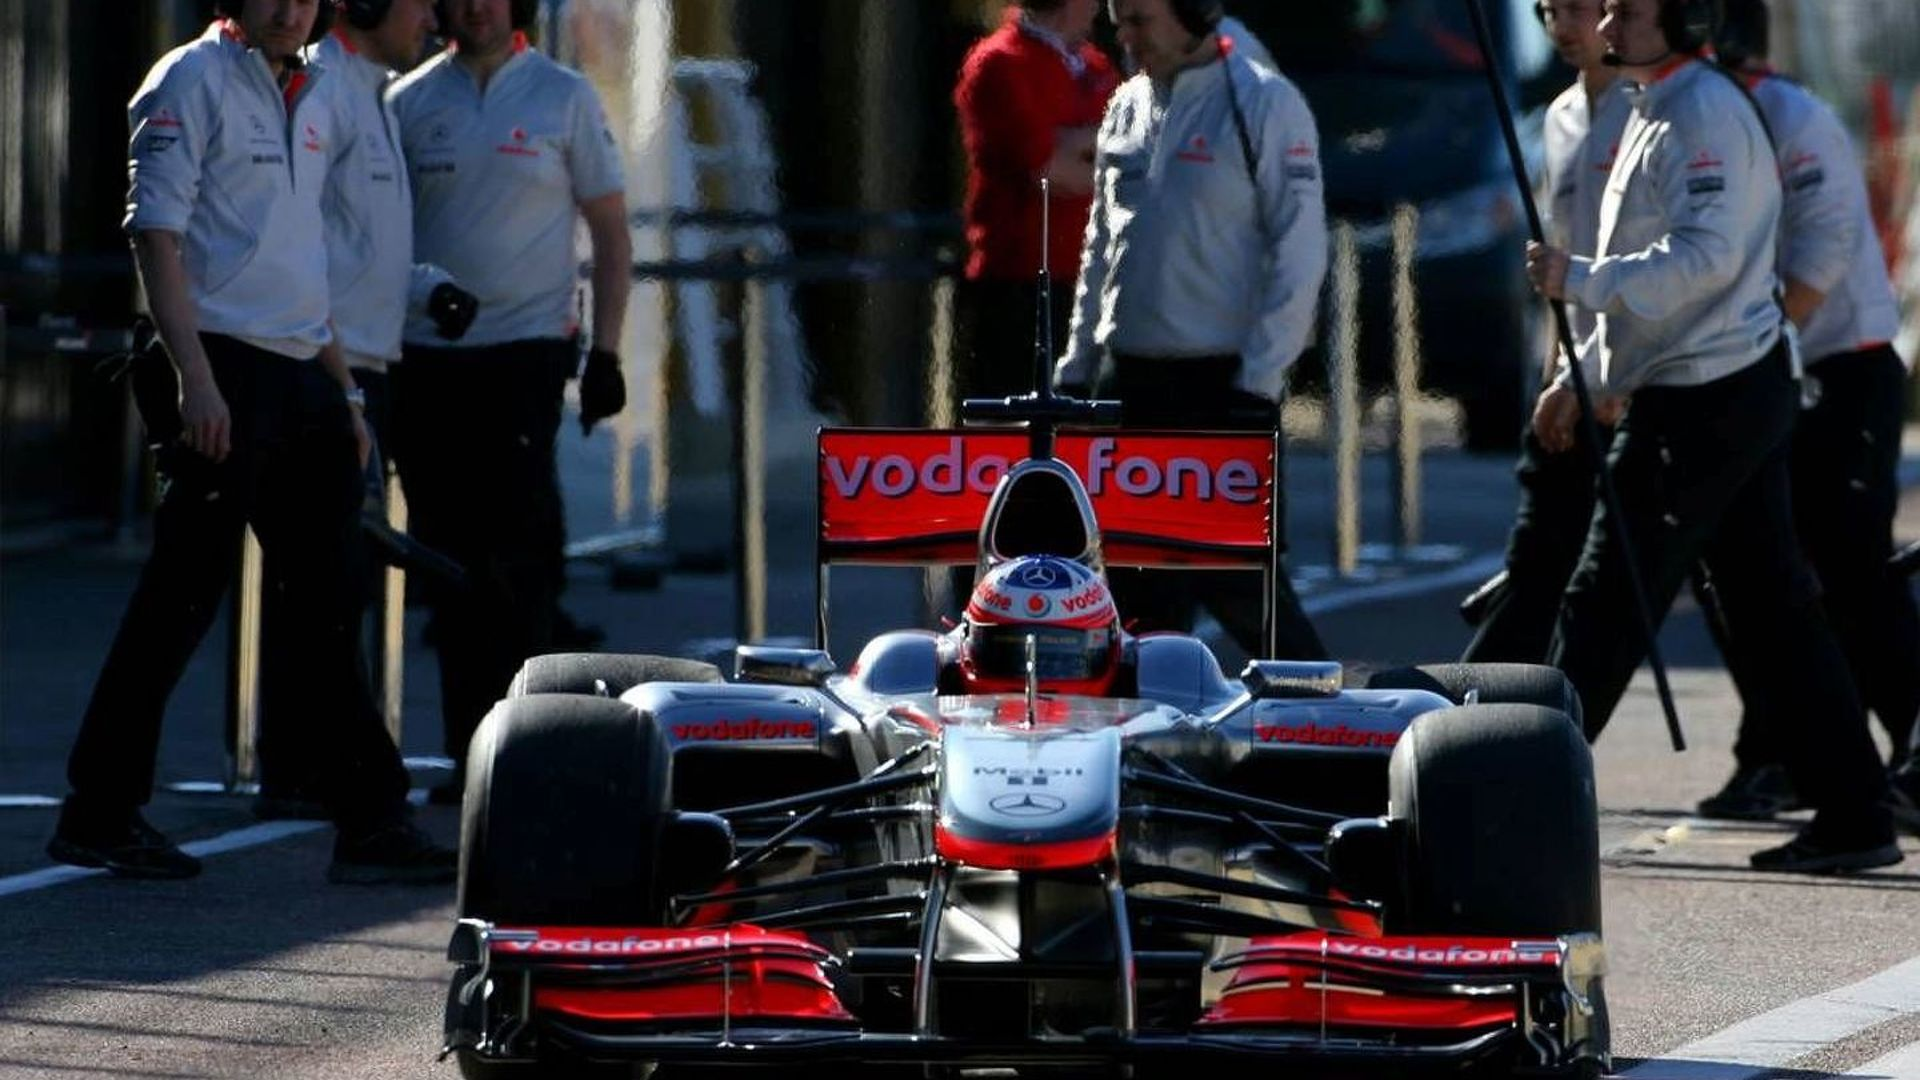 Paffett to be McLaren reserve early in 2010